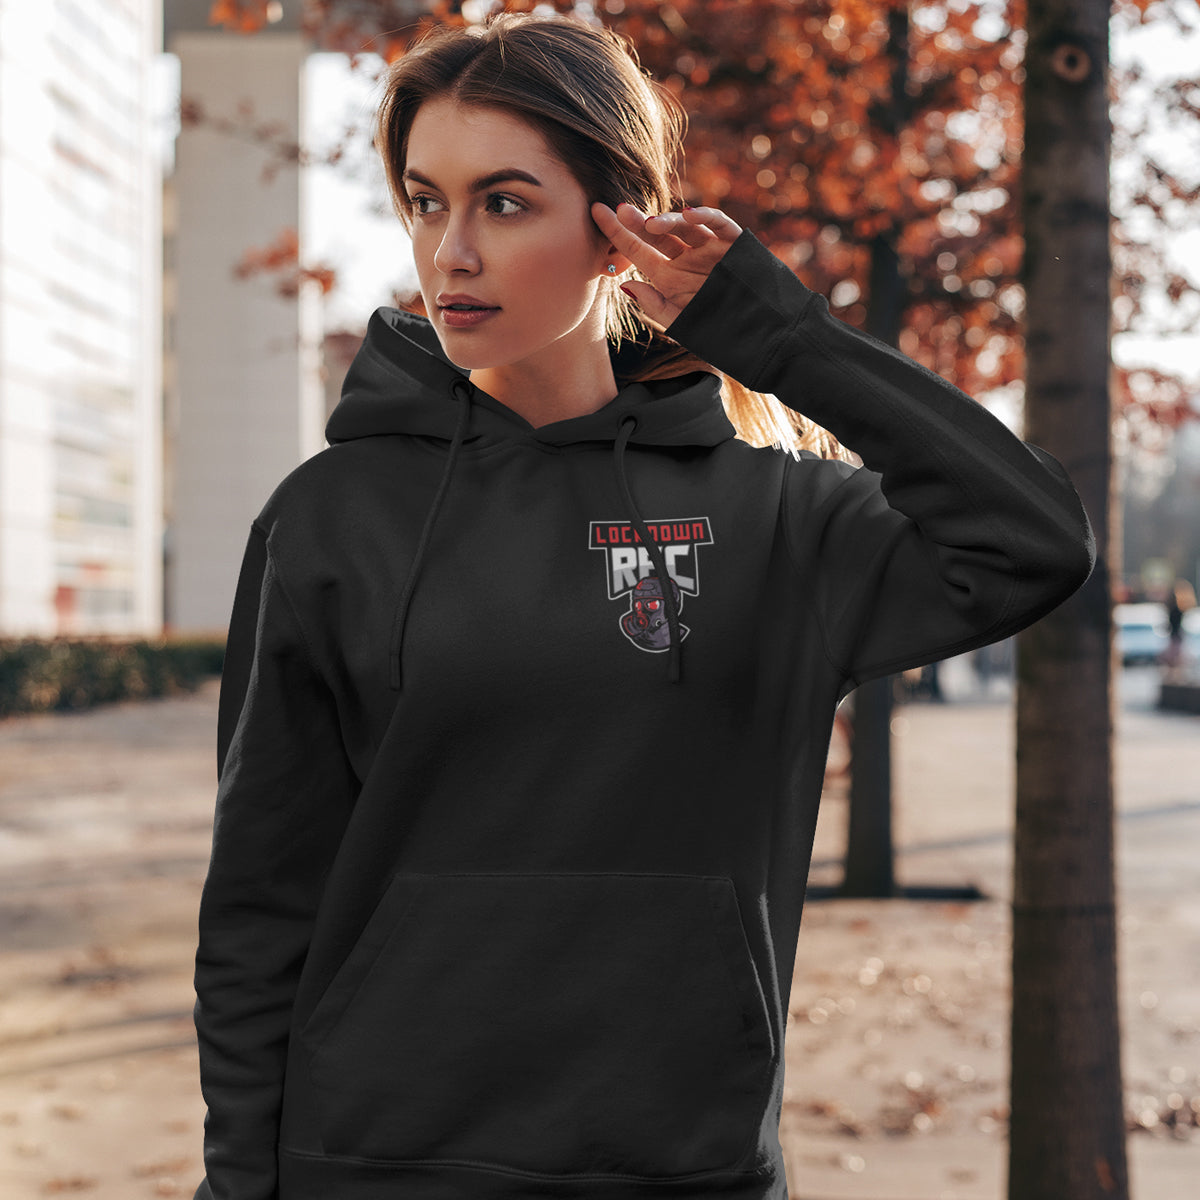 Unisex Lockdown RFC Small Logo Hoody - First XV rugbystuff.com